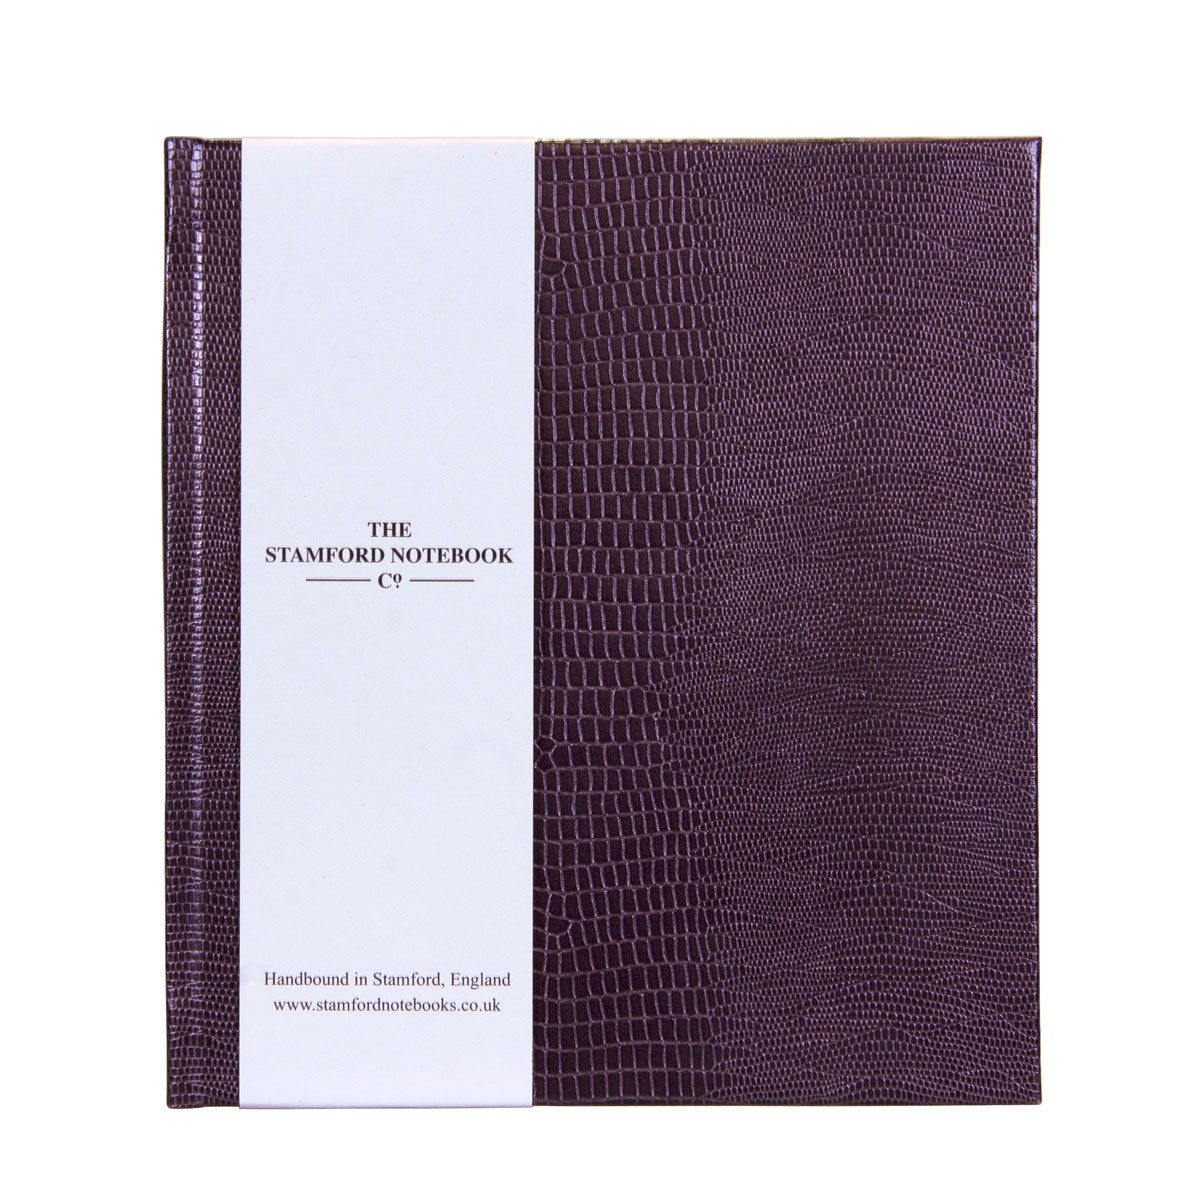 The Iguana Embossed Luxury Handbound Notebook - Beetle Wing